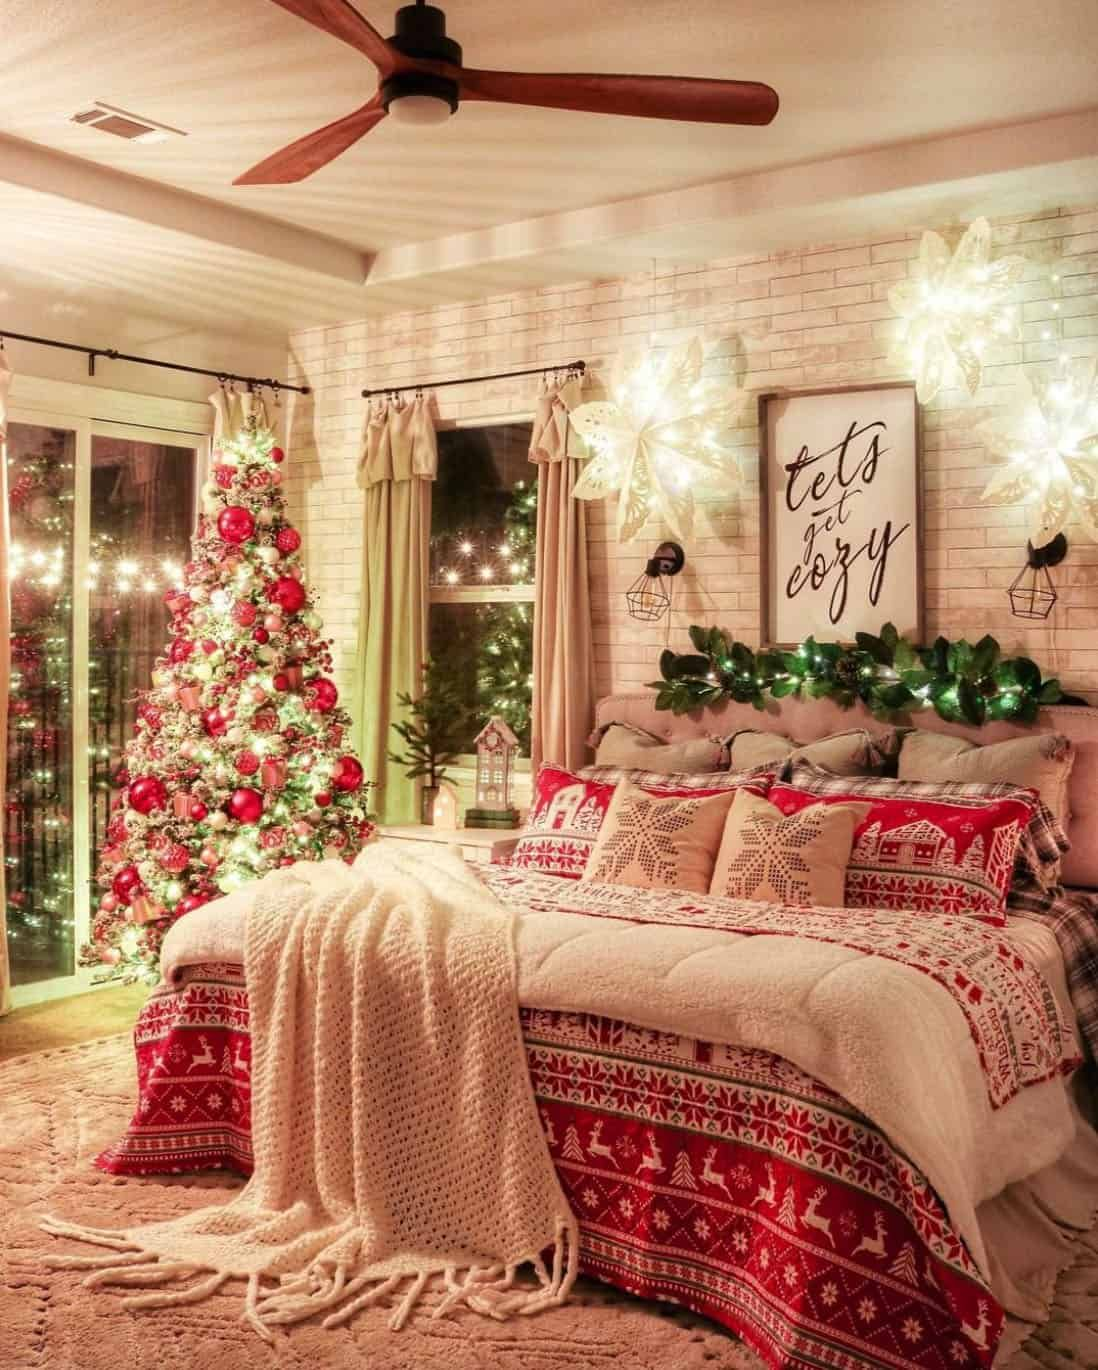 Merry Christmas From Our Home To Yours 70 Christmas Decor Ideas In 2020 Christmas Decorations Bedroom Christmas Decor Inspiration Christmas Room